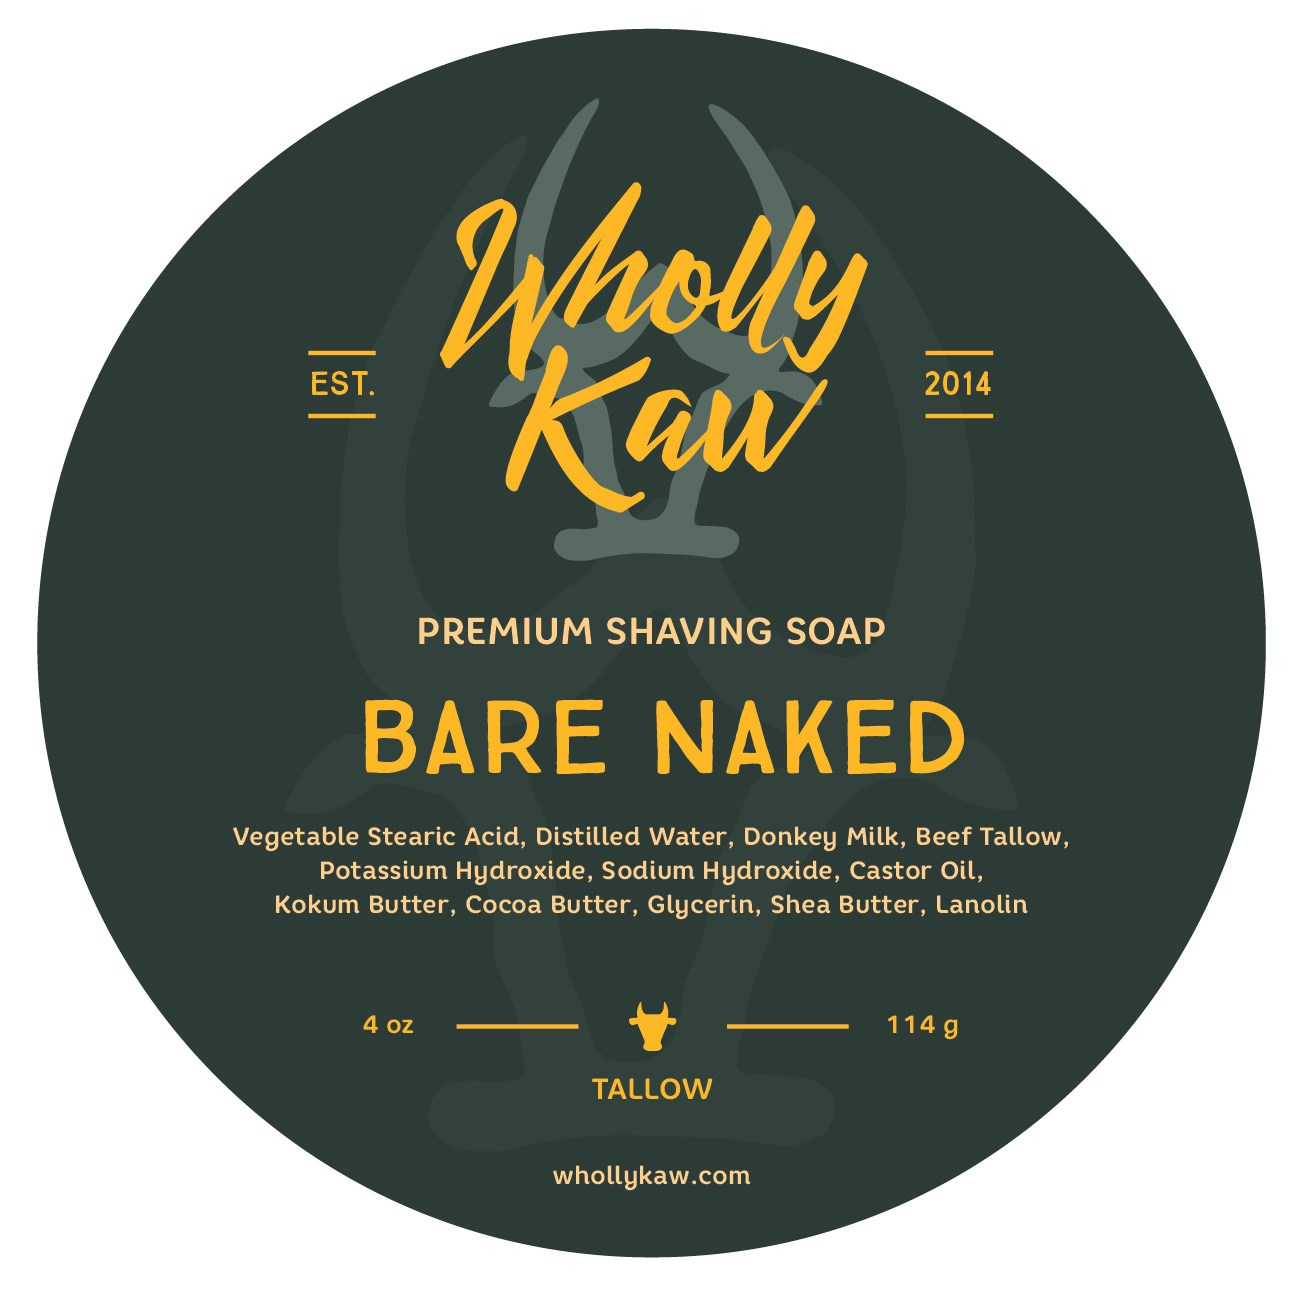 Wholly Kaw - Bare Naked - Soap image